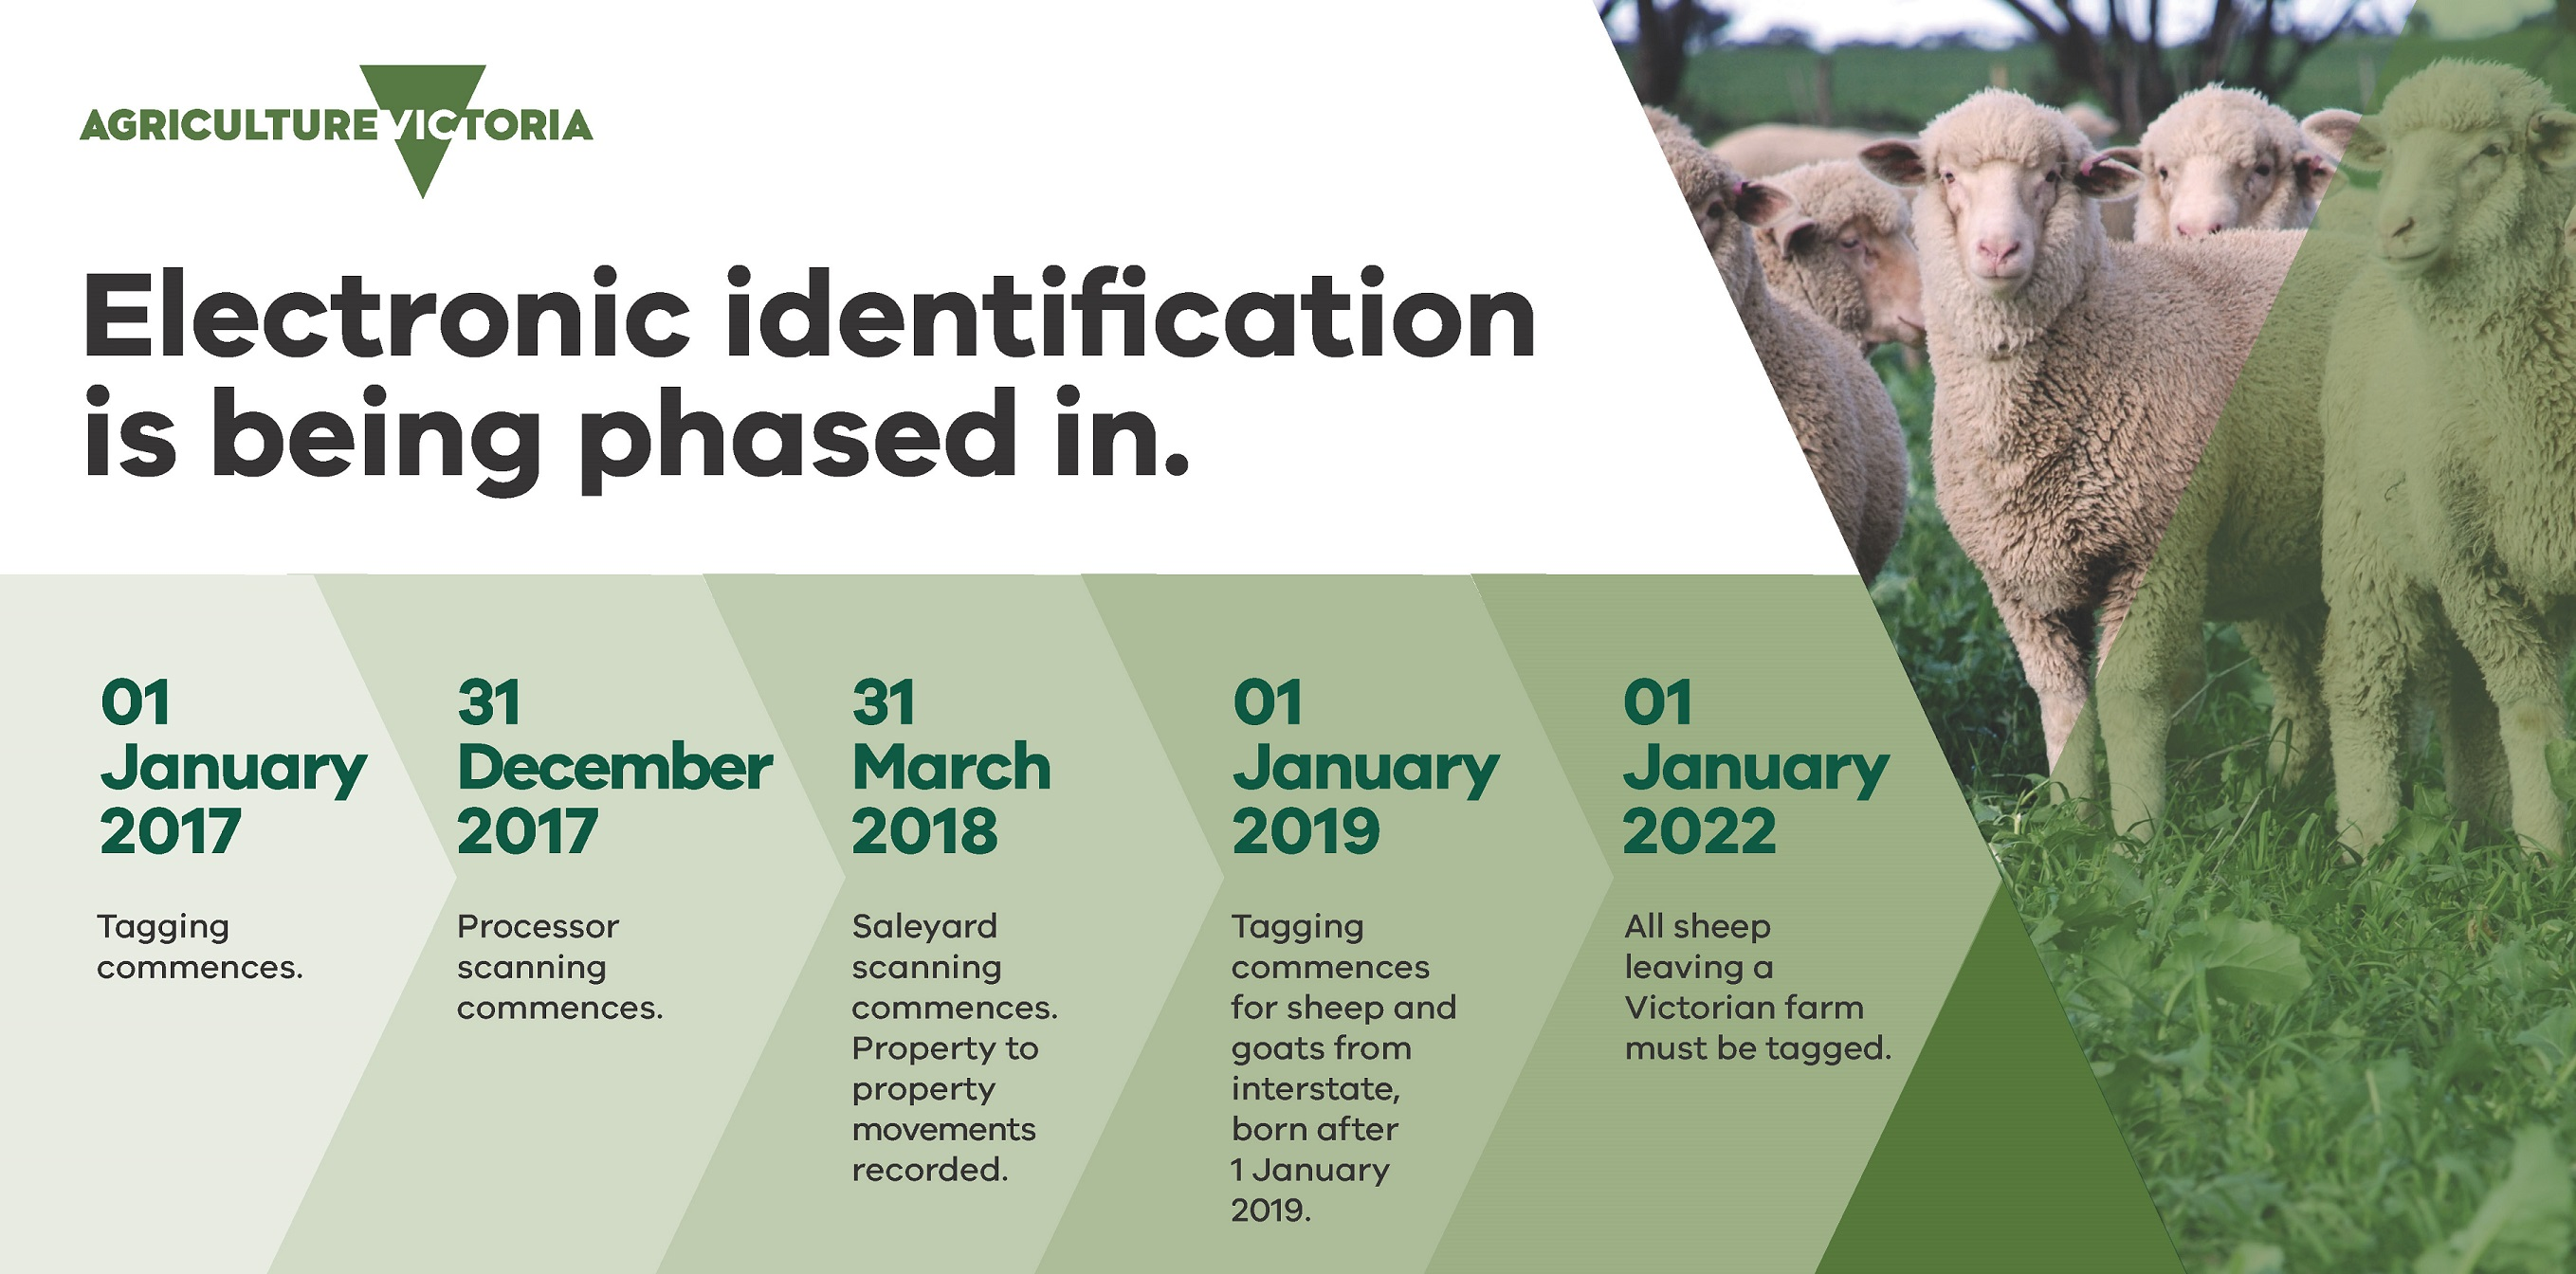 Timeline for phasing in electronic identification for sheep and goats, including photograph of sheep in a field and Agriculture Victoria logo. Timeline described in the paragraph below.